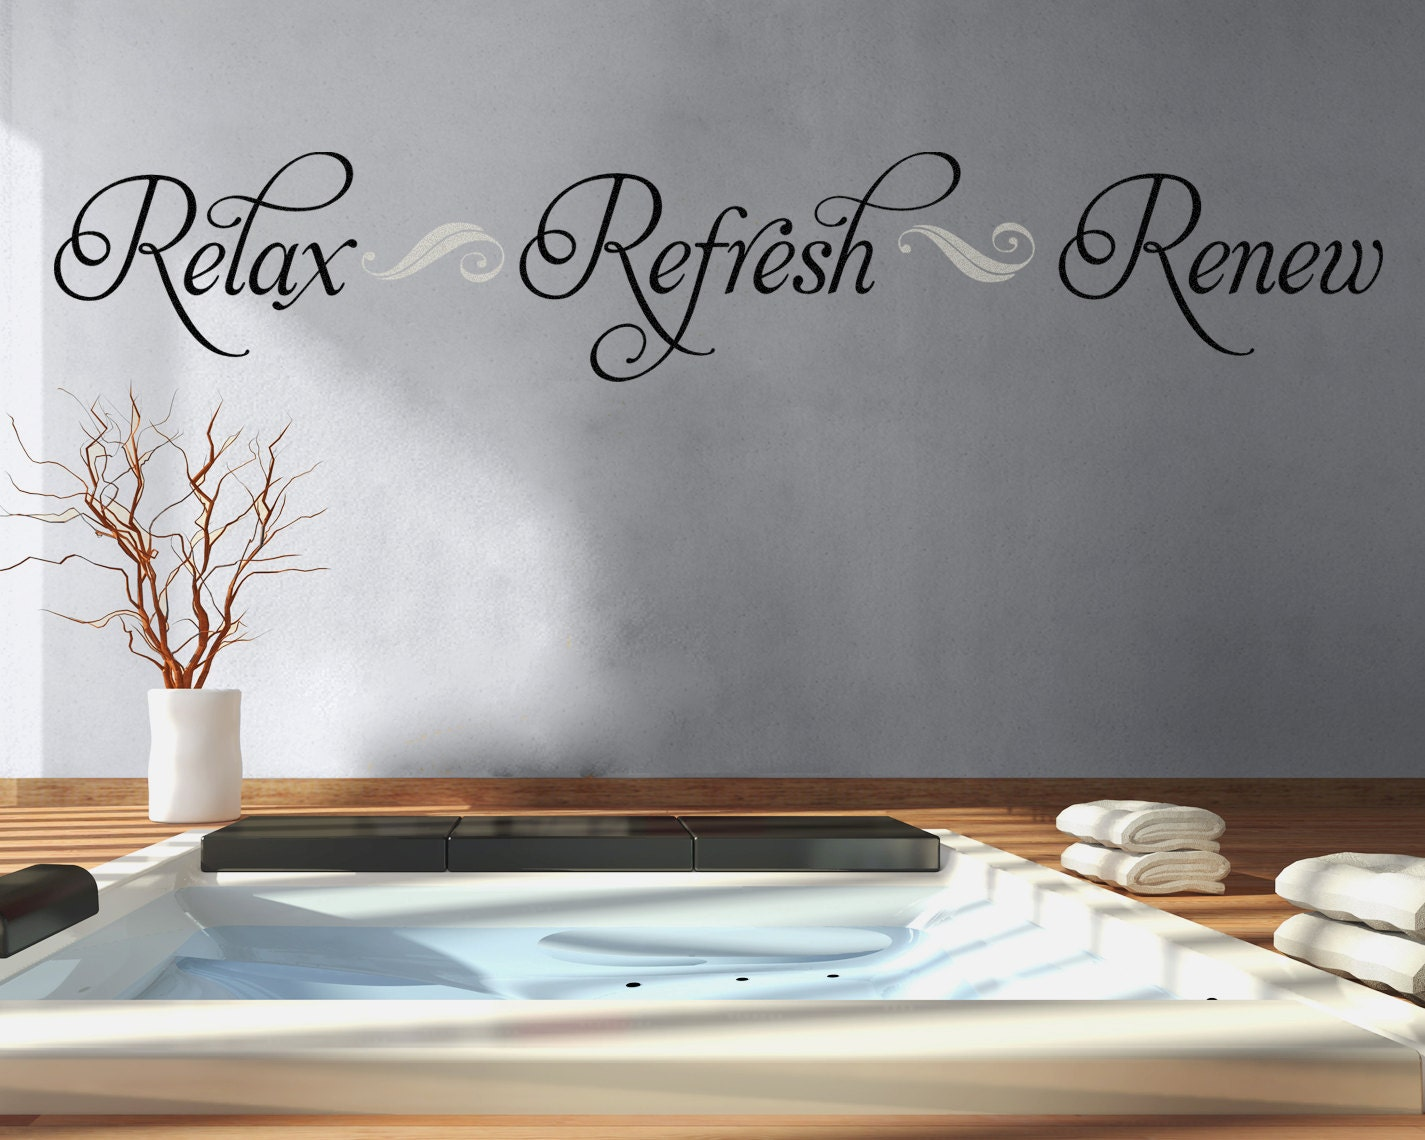 Spa wall decals